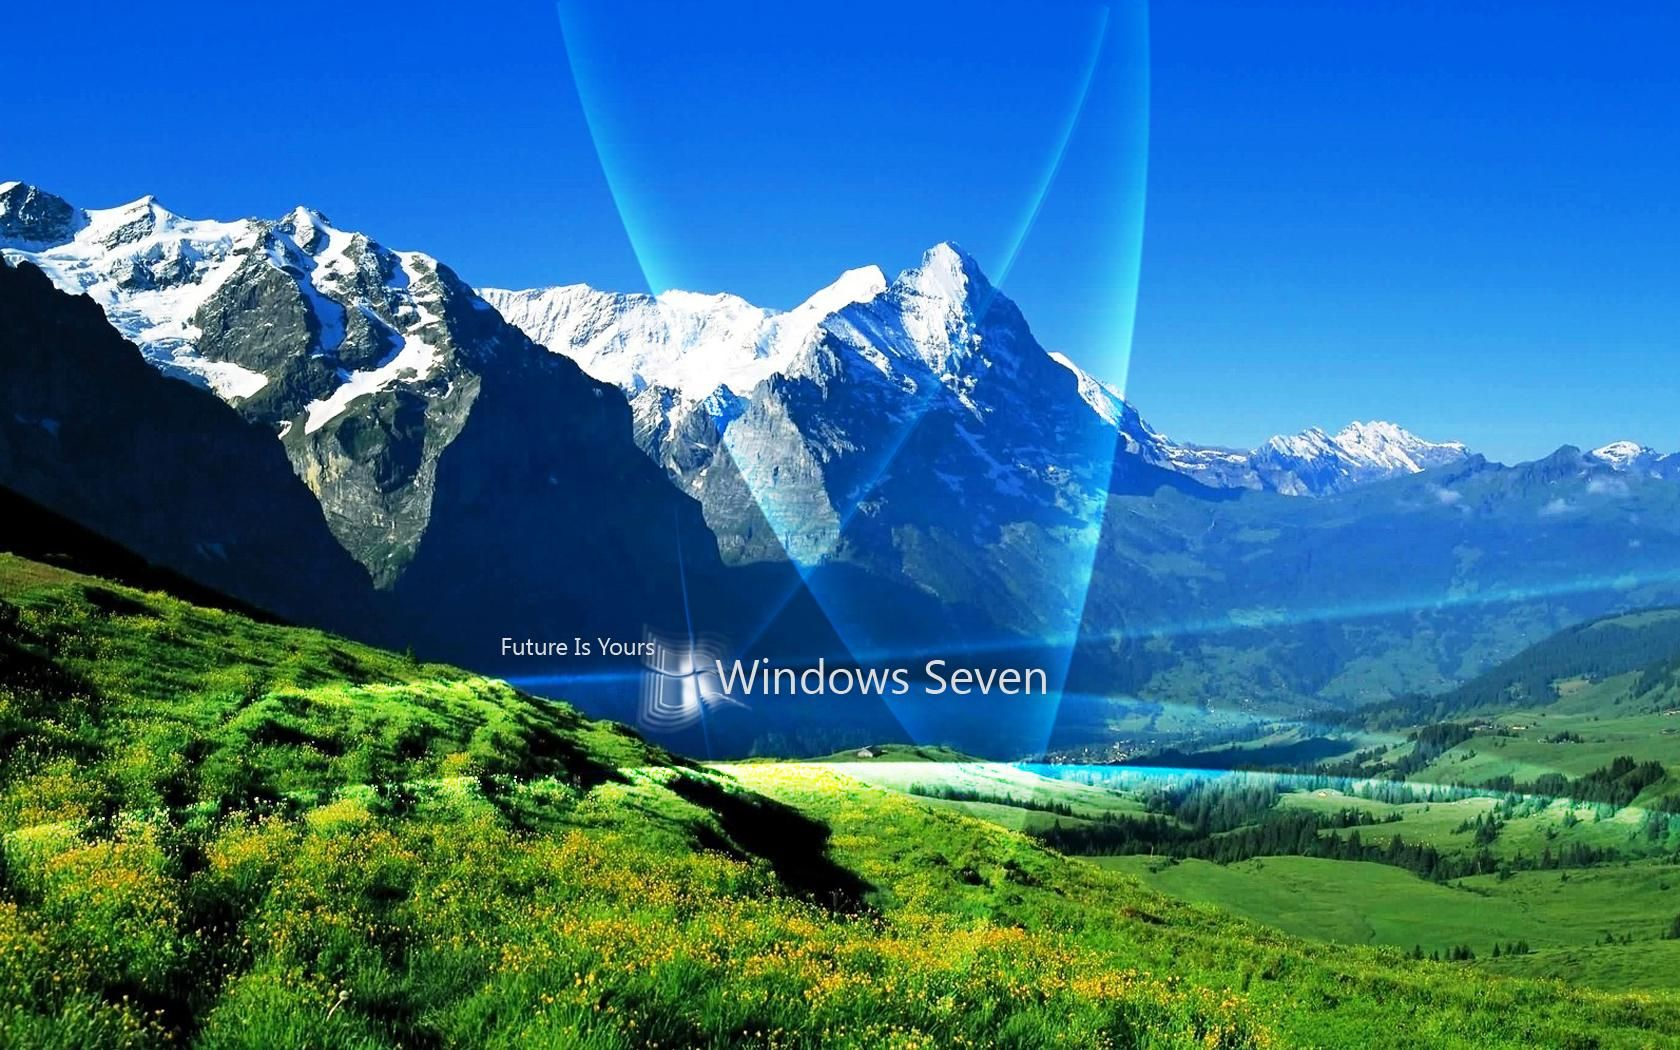 Download Free Live Wallpapers For Pc Group 1680 1050 Free Live Wallpapers For Windows 7 36 Nature Desktop Wallpaper Nature Desktop Beautiful Nature Wallpaper